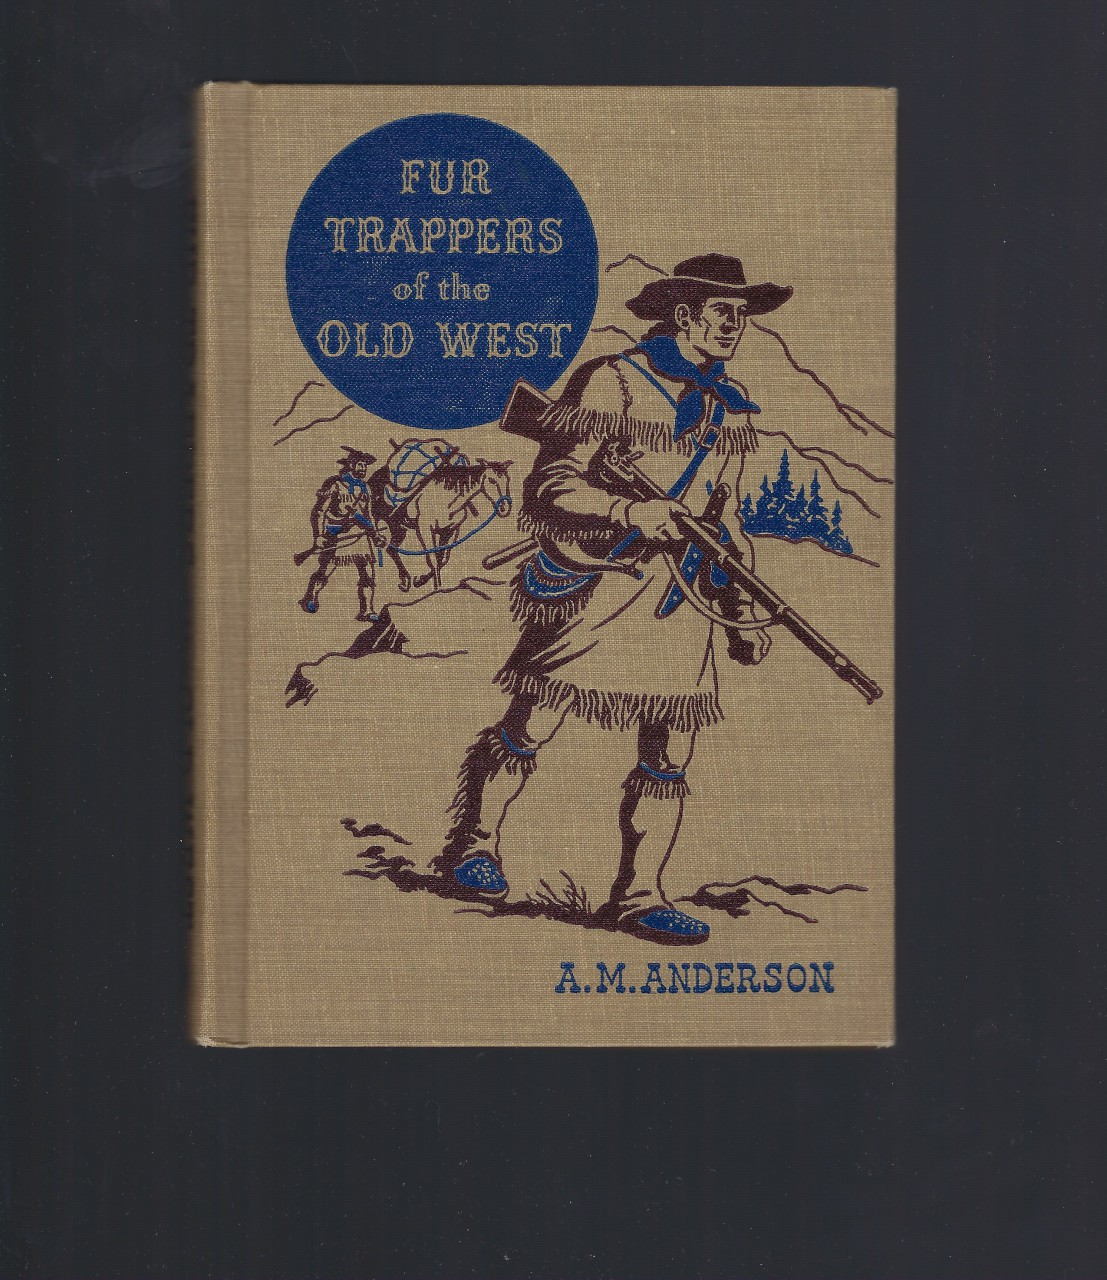 Fur Trappers of the Old West (The American Adventure Series) 1958, ANDERSON, A. M. Illustrated by Jack Merryweather.